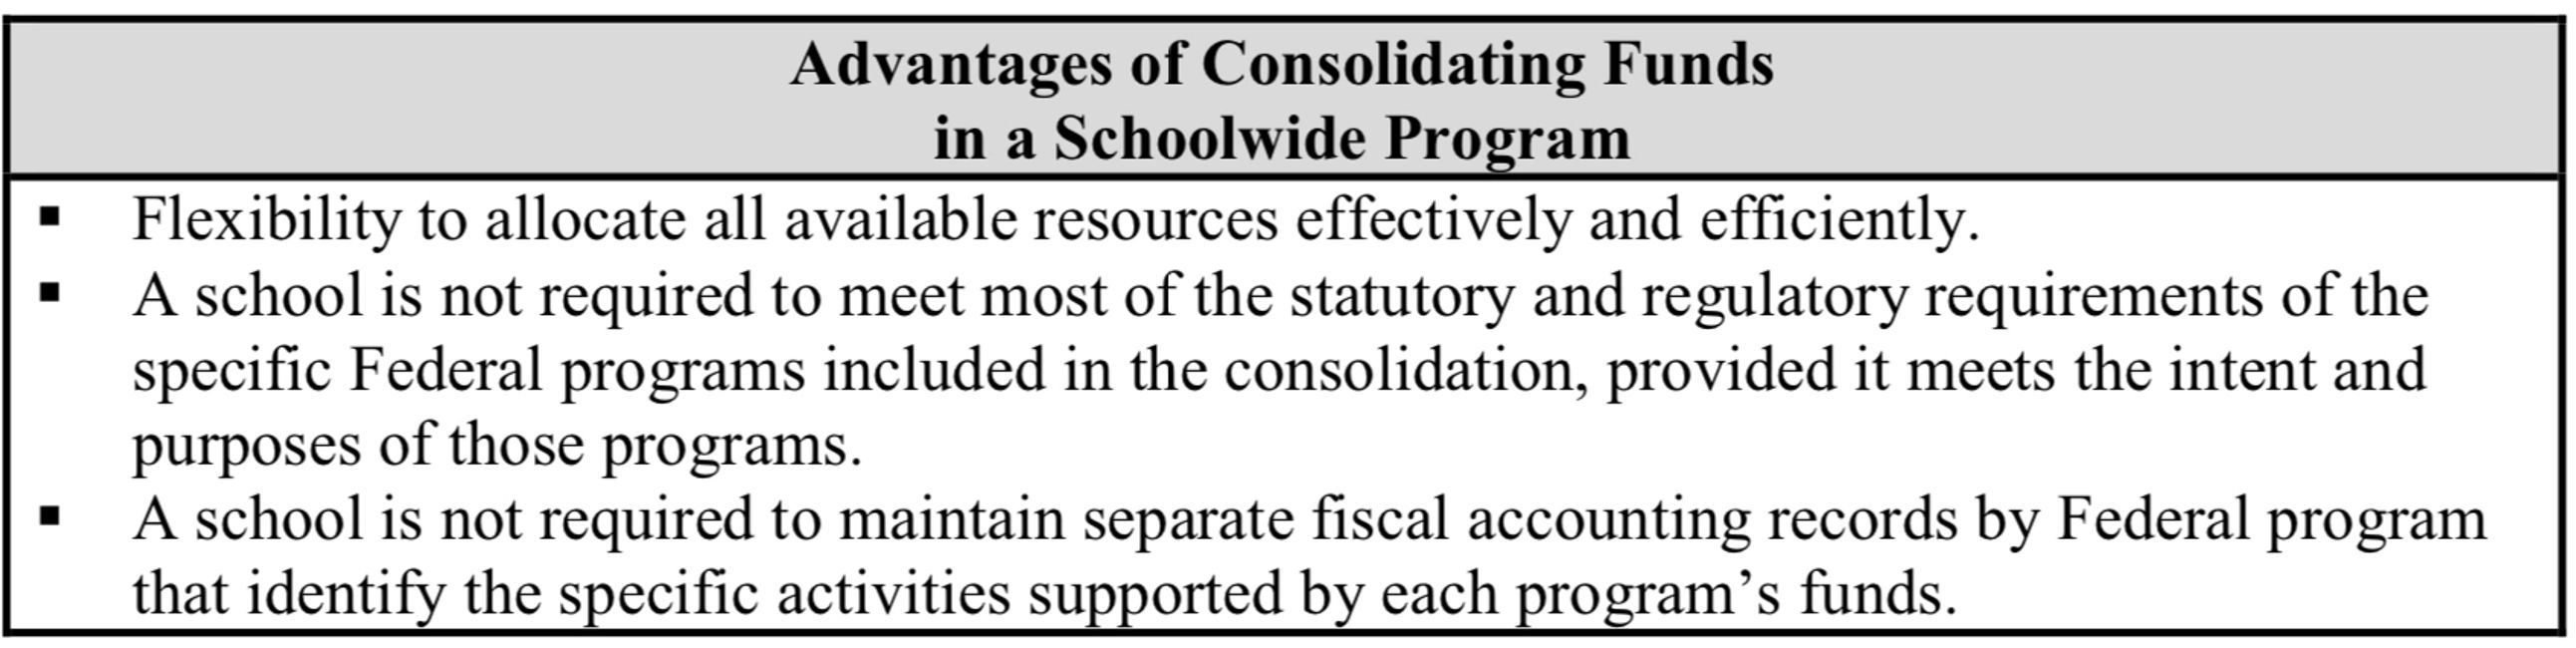 SUPPORTING SCHOOL REFORM BY LEVERAGING FEDERAL FUNDS IN A SCHOOLWIDE PROGRAM (September,2016)